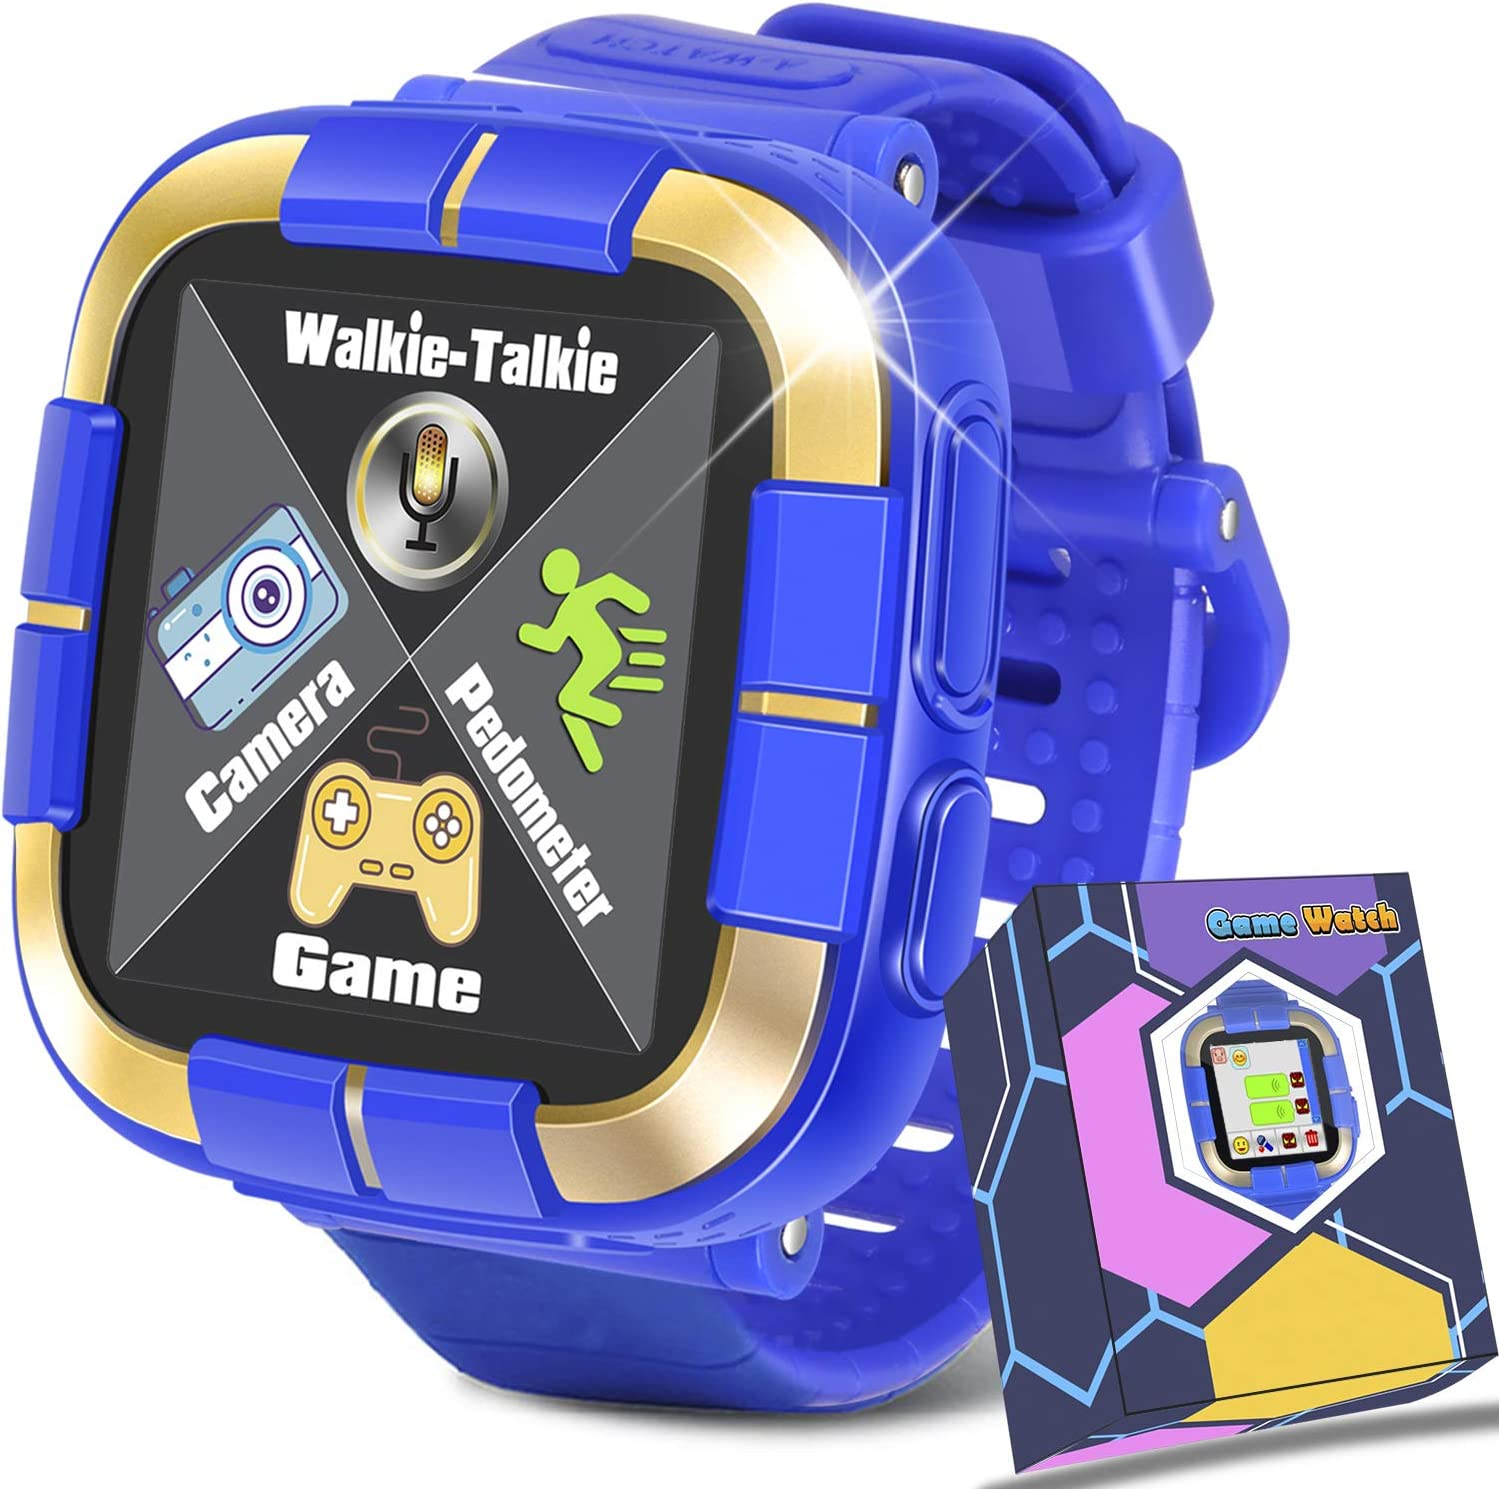 Smartwatch for Girls Boys,Kids Walkie Talkie Game Smart Watch with Camera Touch Screen Pedometer,Wrist Bracelet Kids Electronic Watches Birthday Holiday Toys Gifts (Blue)